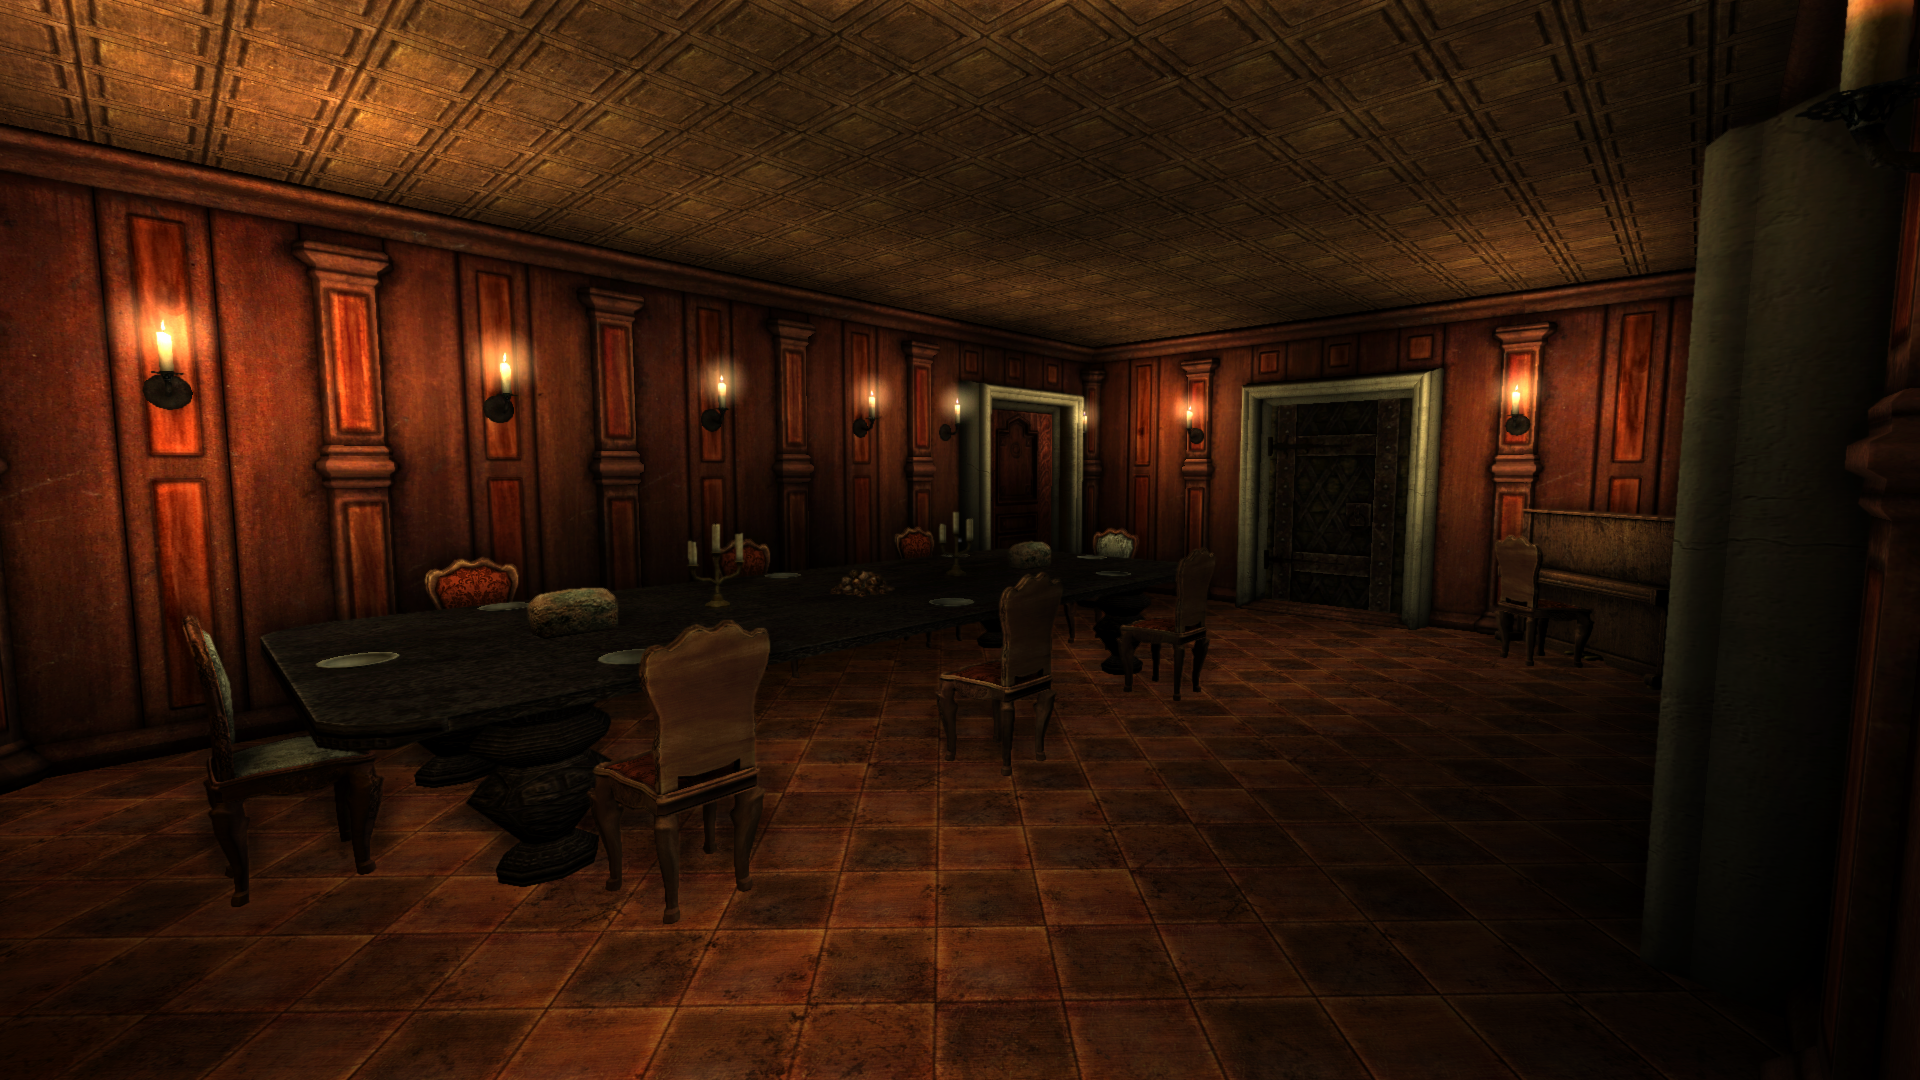 Dining Room image - Case 10-00: Murderous Mansion mod for Amnesia ...